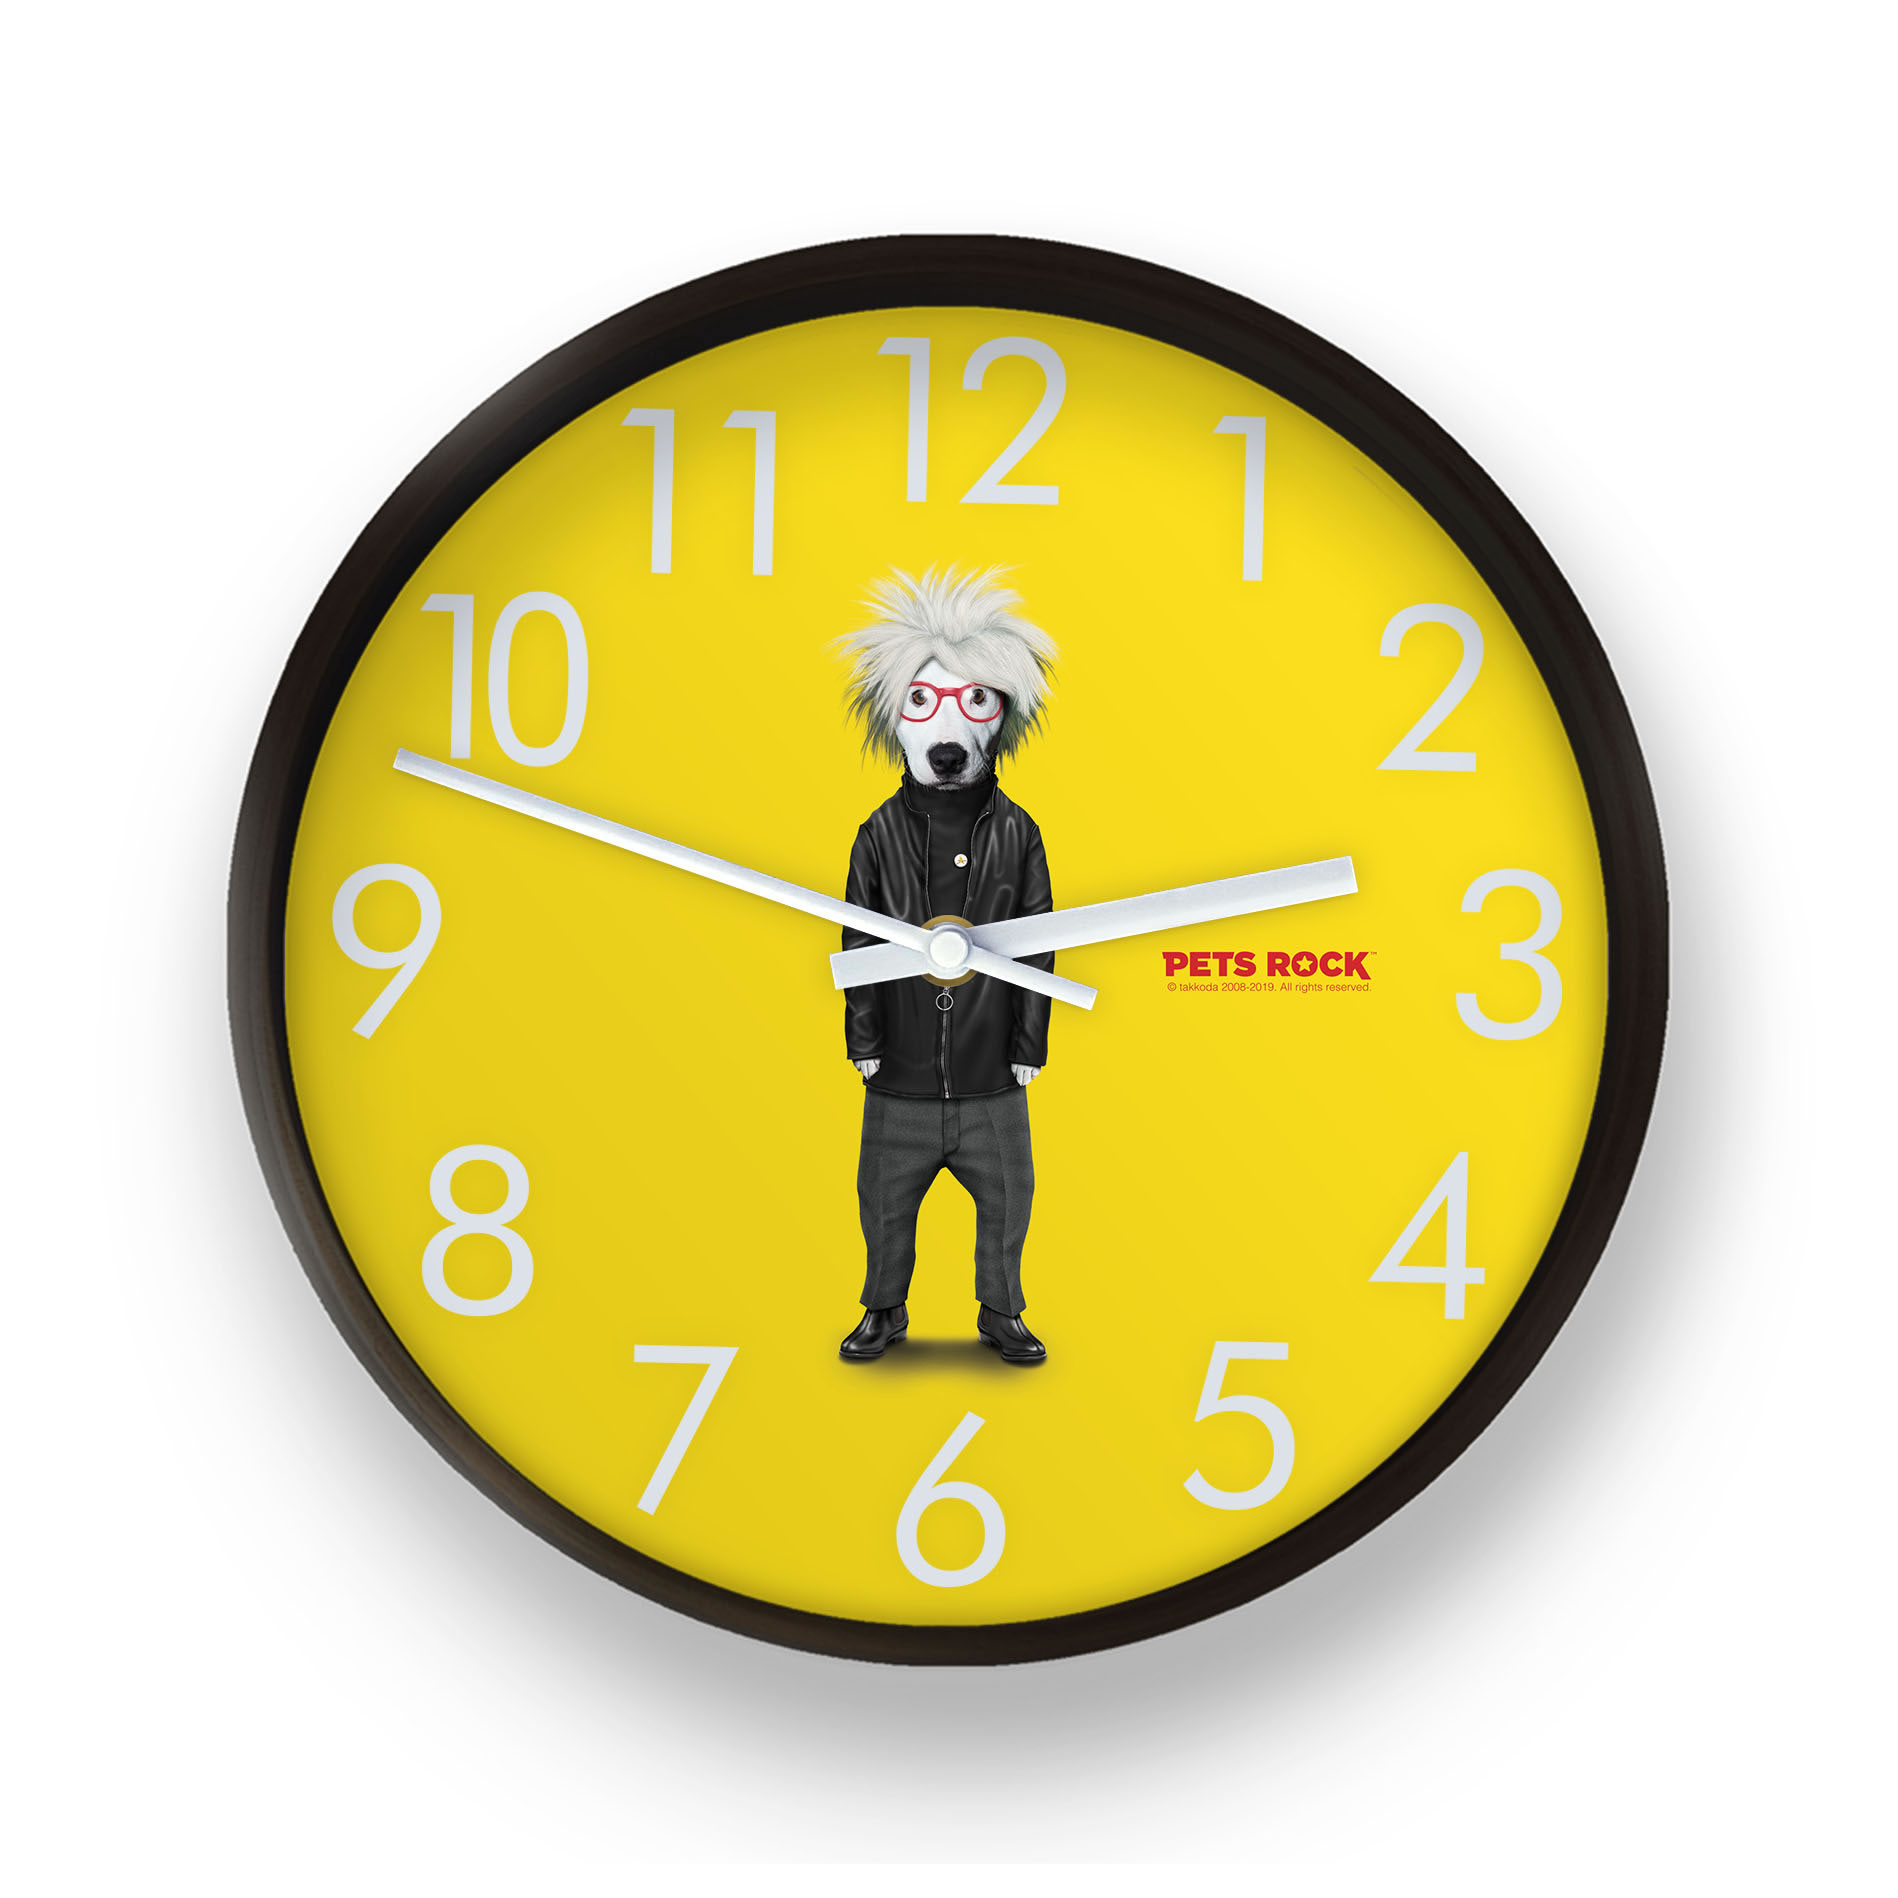 Soup Pets Rock Wall Clock